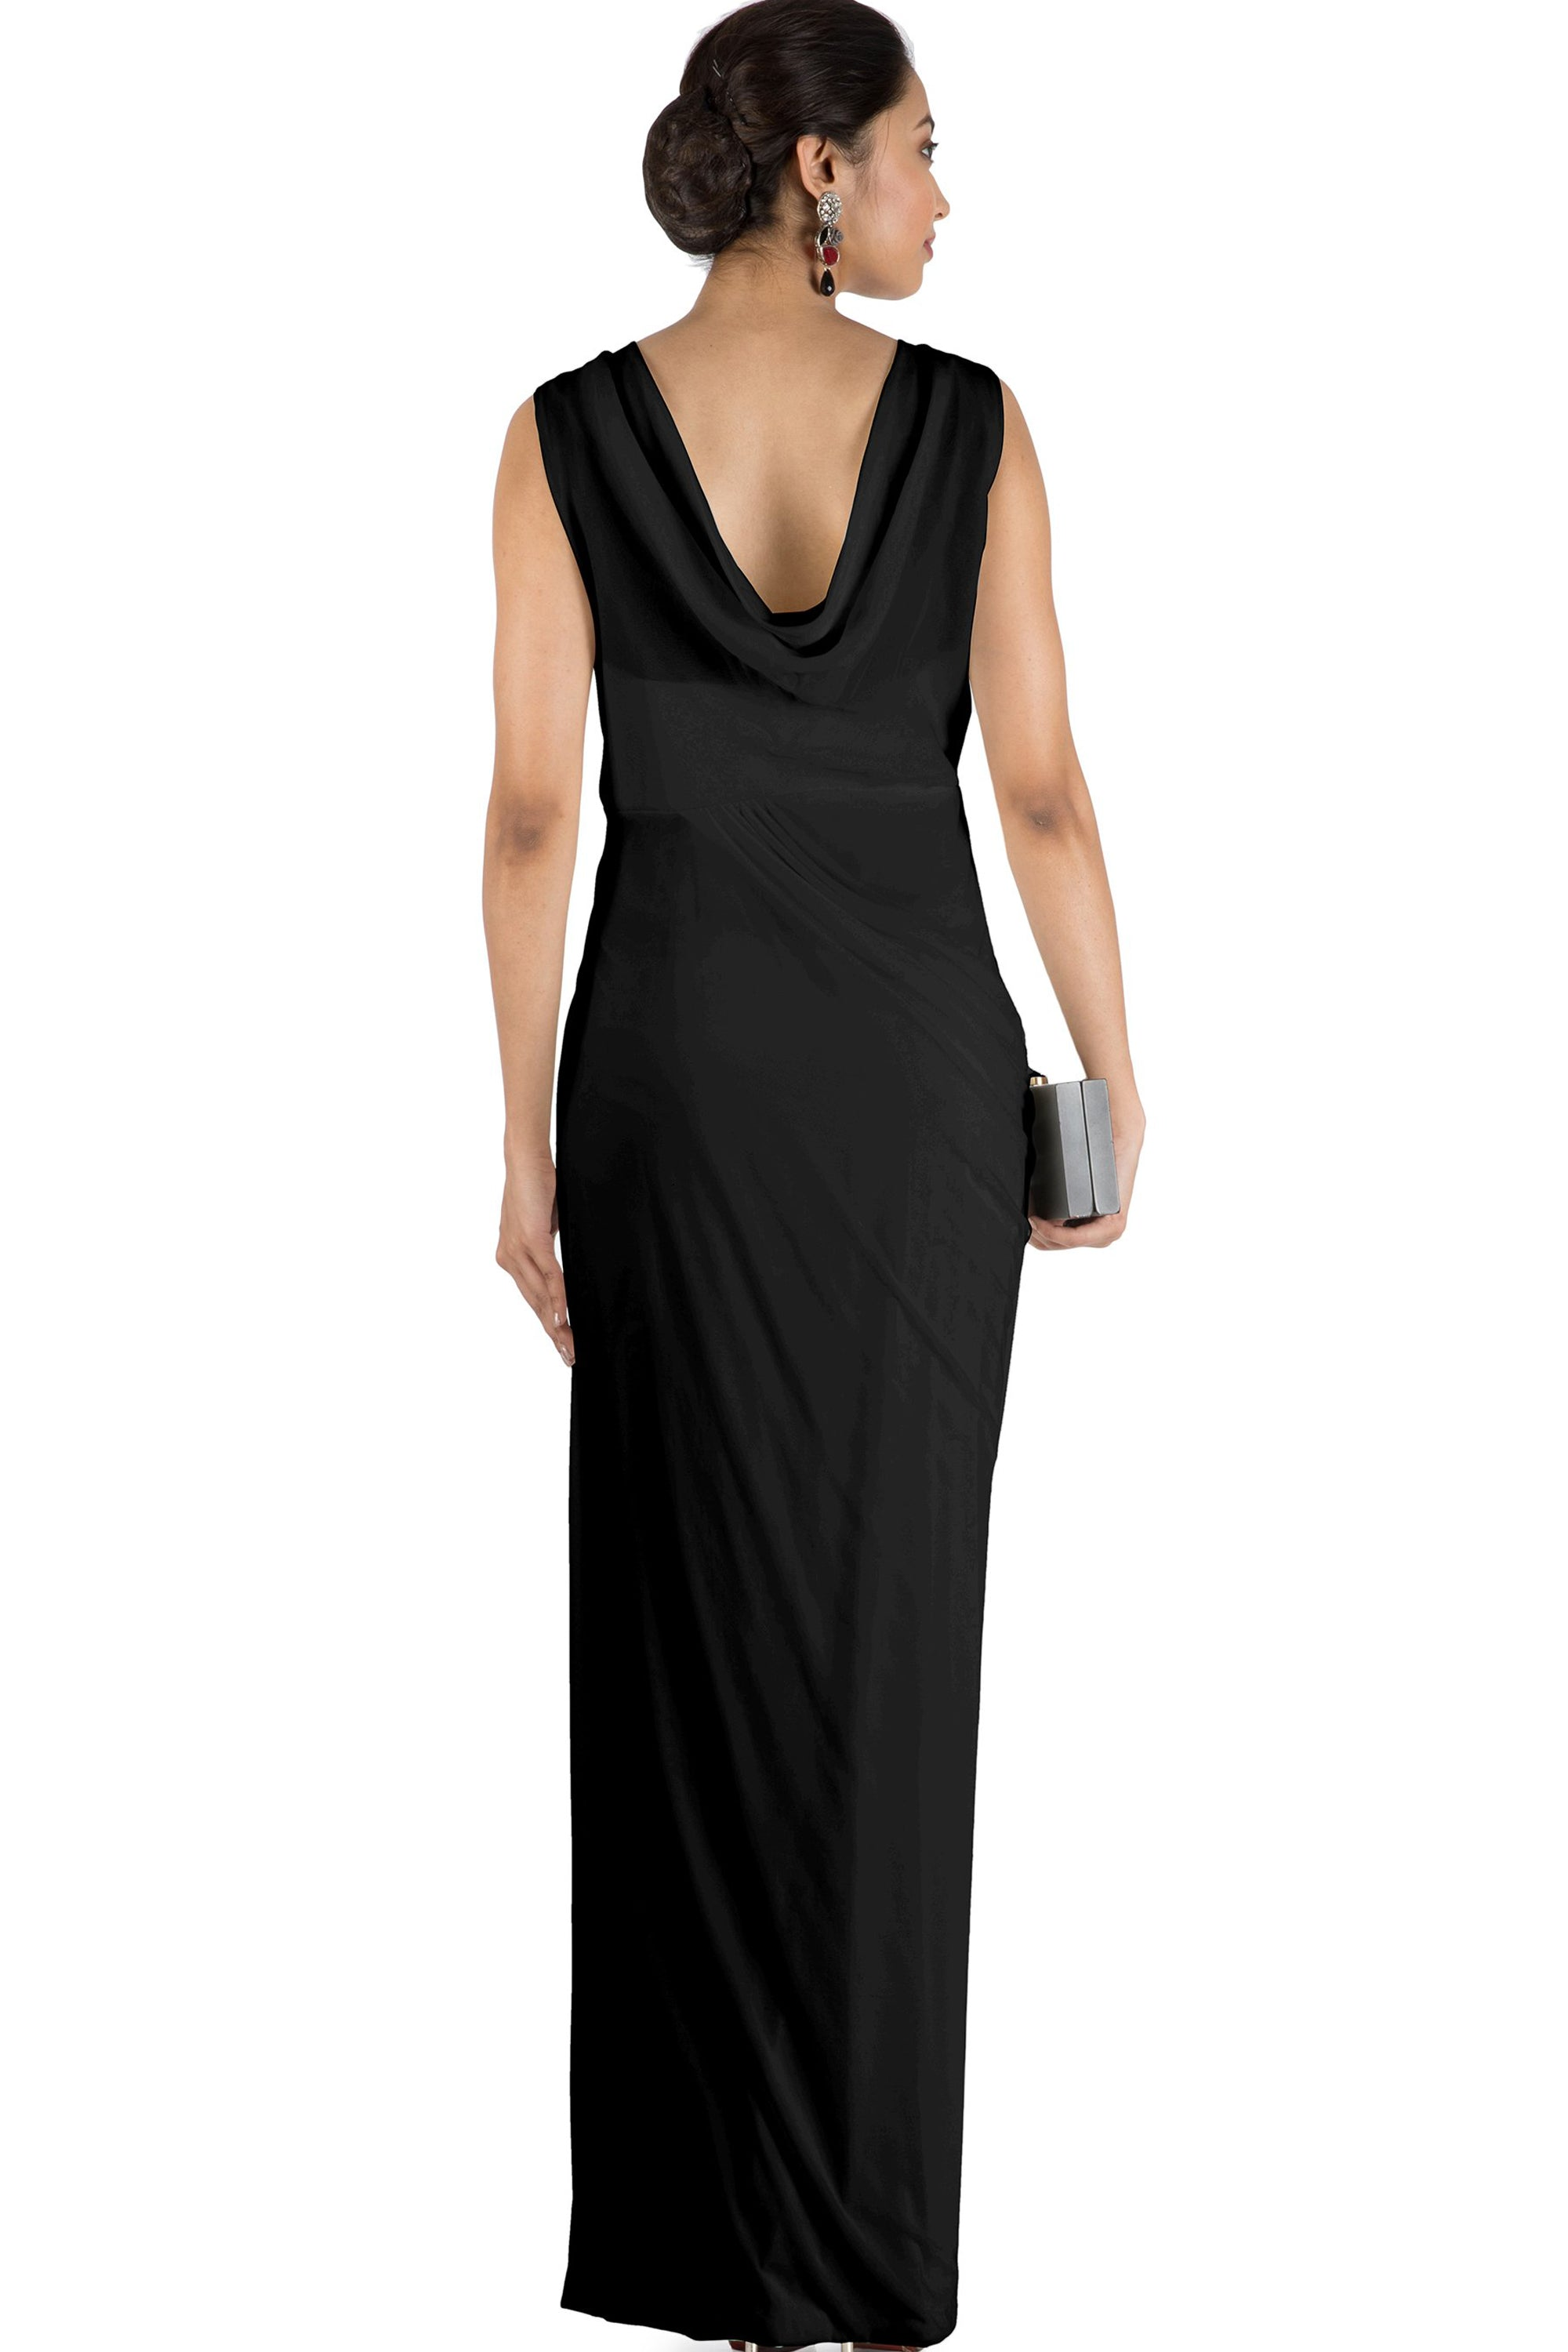 Black Drape Cocktail Dress BACK